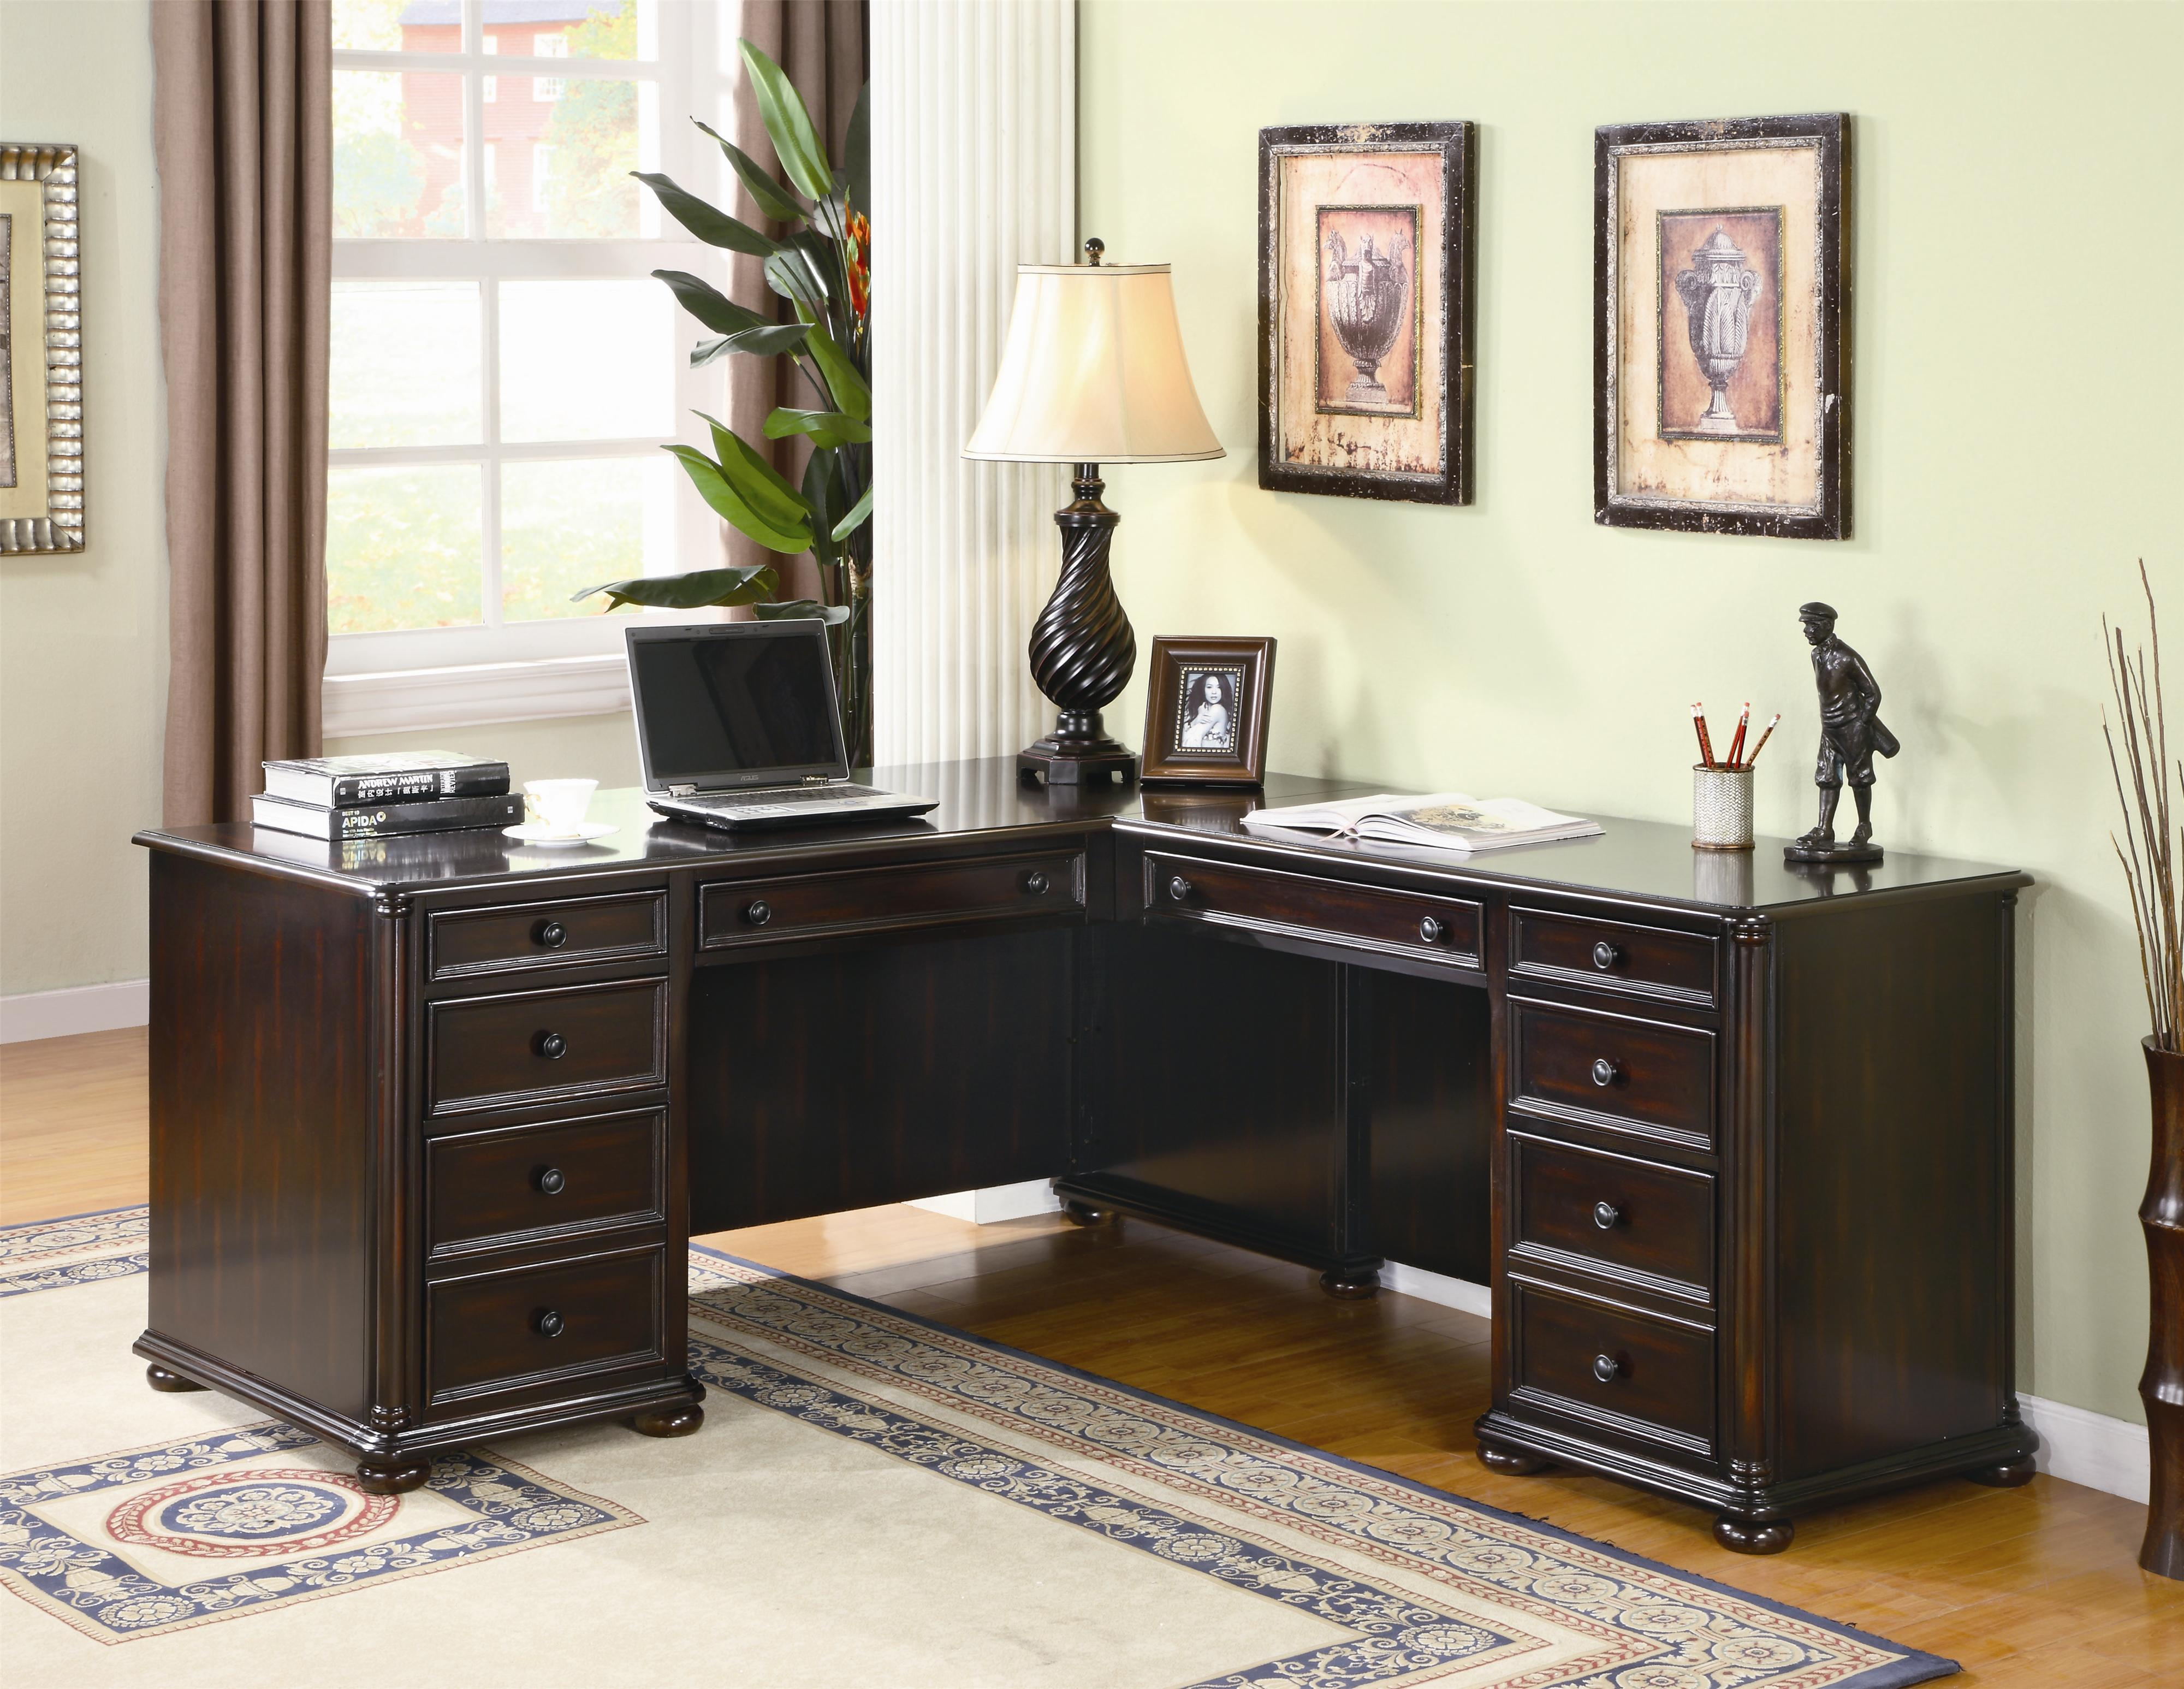 Best Desks Home Office With Interesting Sectional Modular Desks Home Office Which Are Made From Dark Brown Hardwood Material And Has Two Wall Painting And Corner Desk Lamp